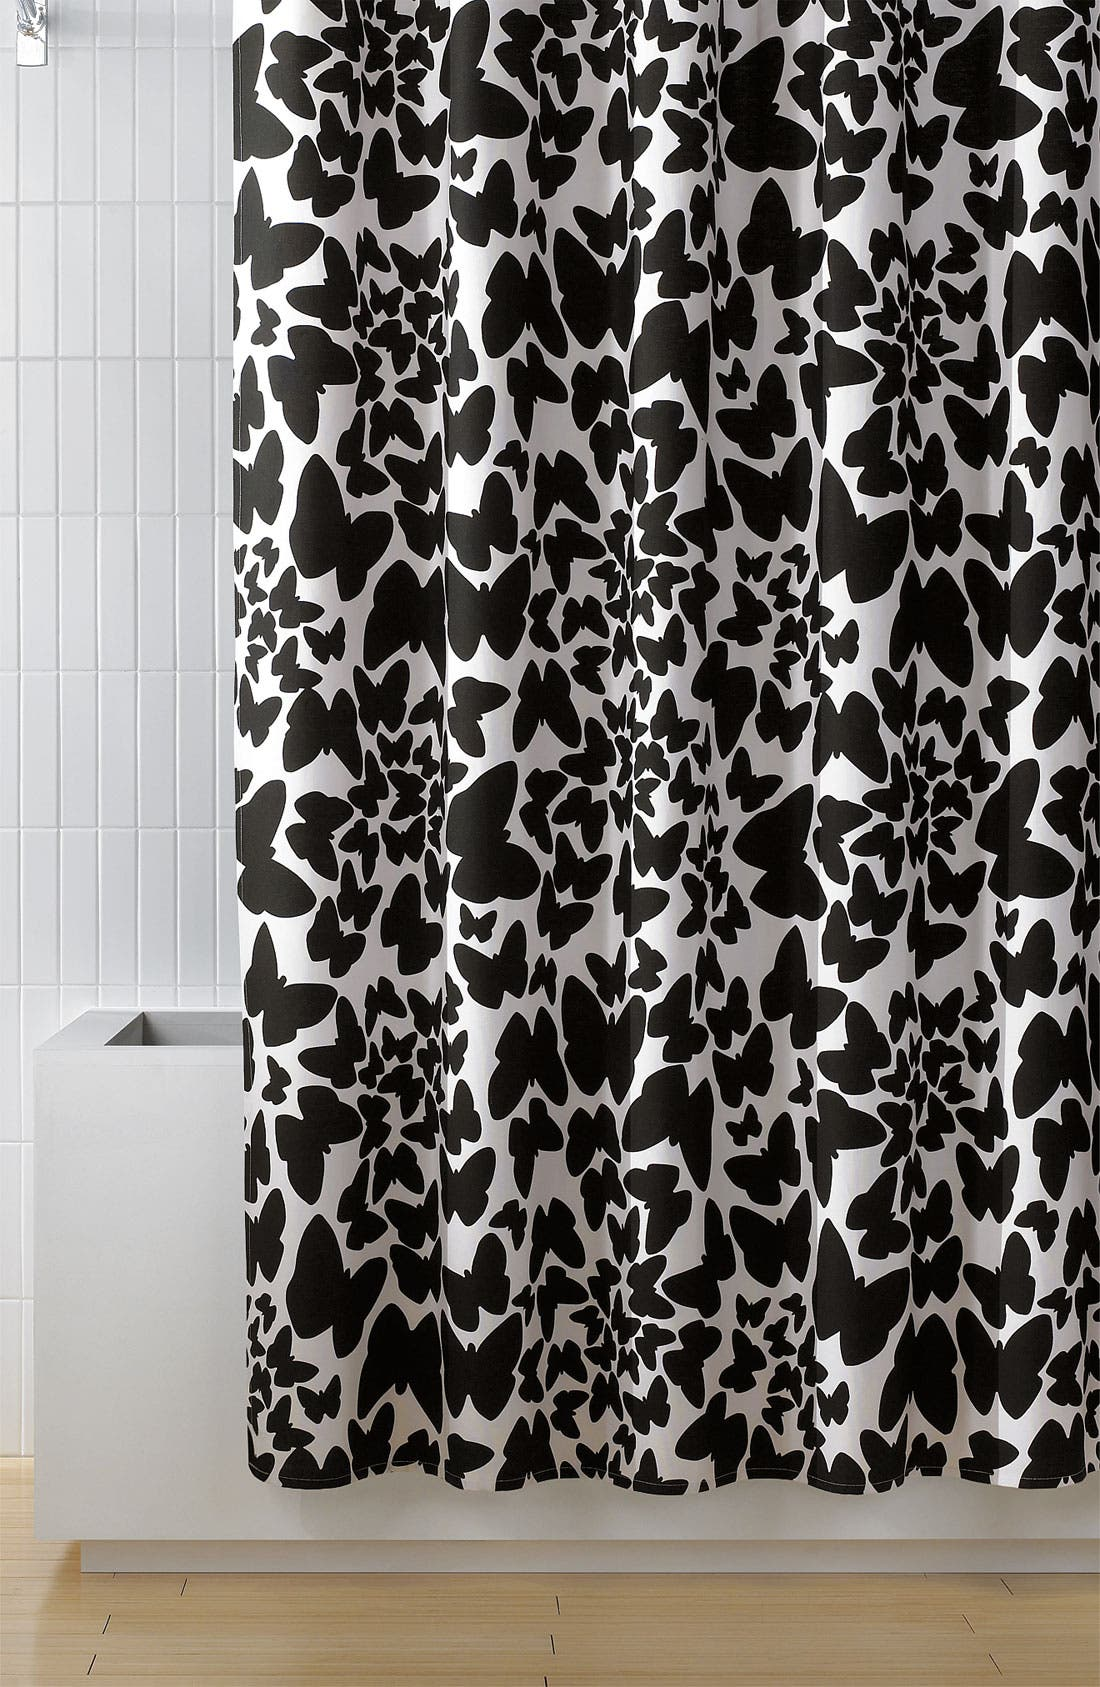 Alternate Image 1 Selected - Diane von Furstenberg 'Butterflies' Shower Curtain